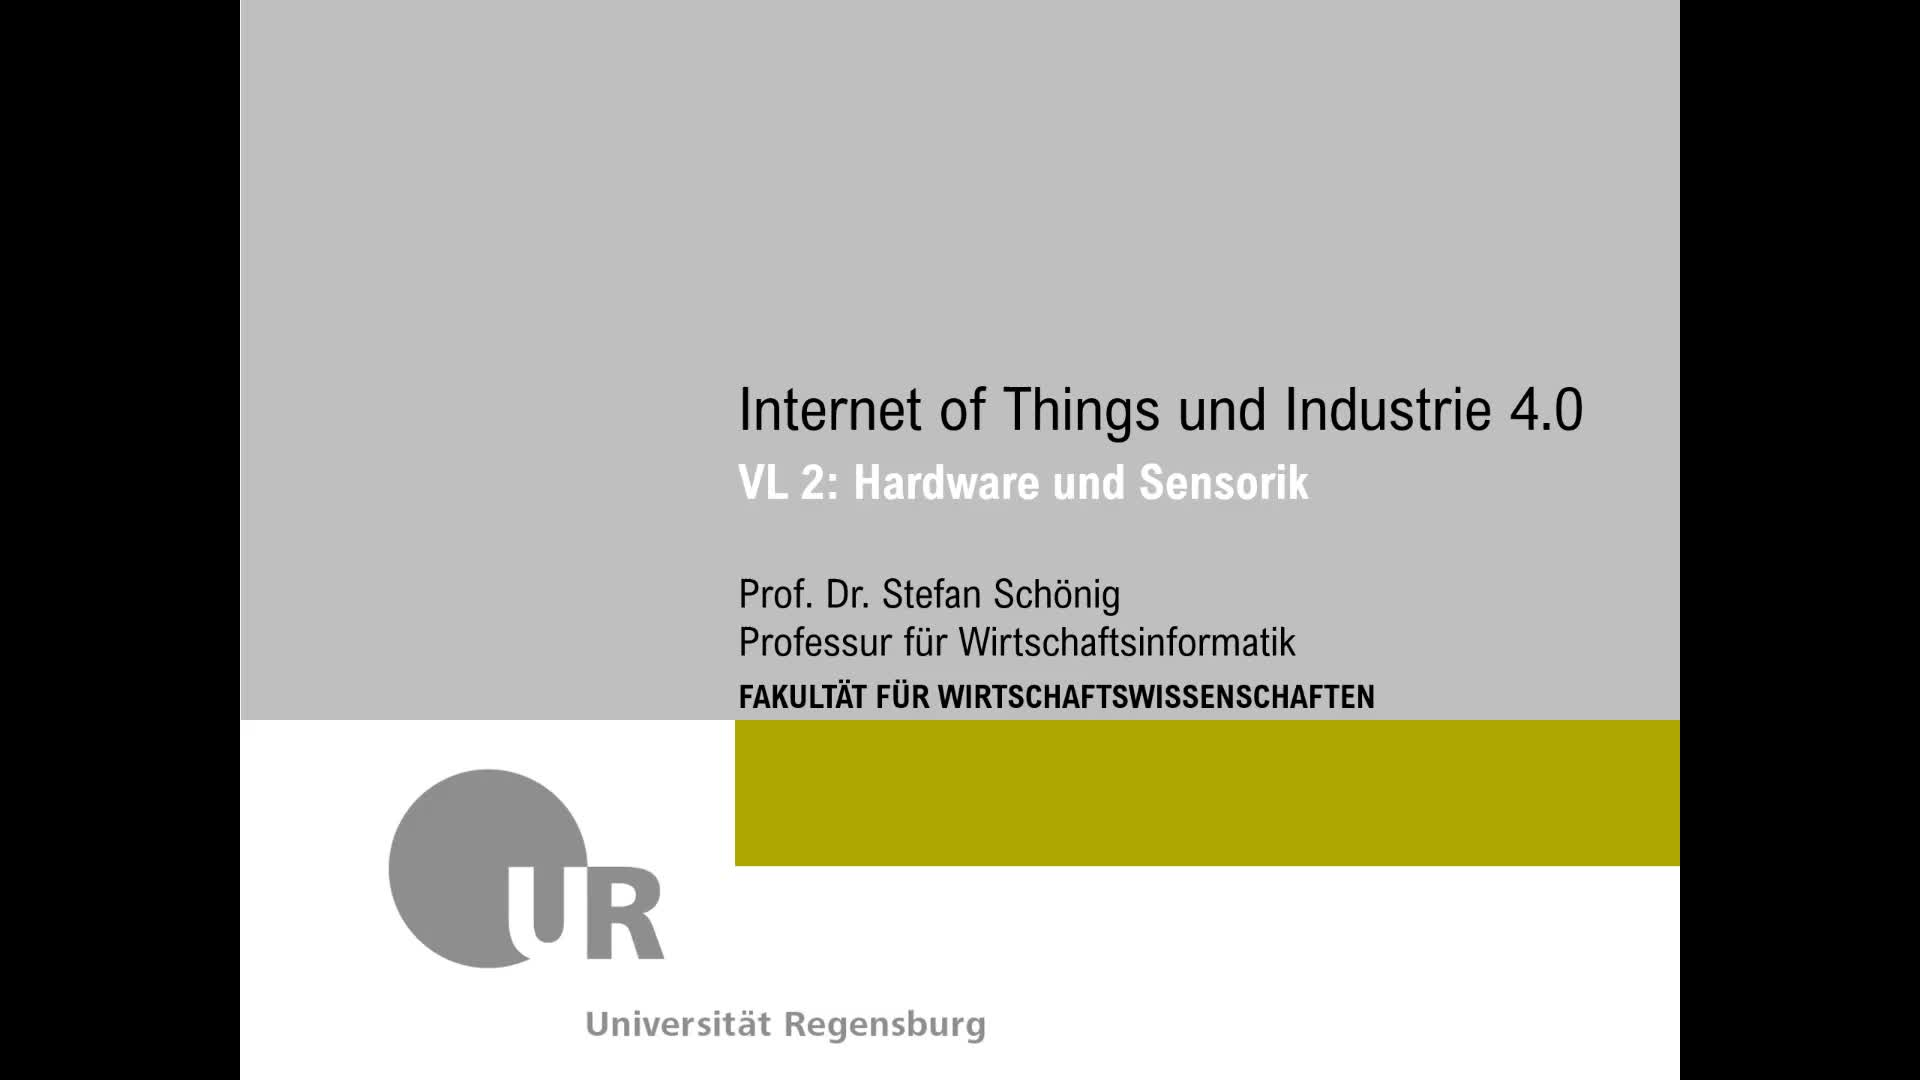 SS 2020 - Internet of Things und Industrie 4.0 - Kapitel 2 (Hardware - Plattformen)